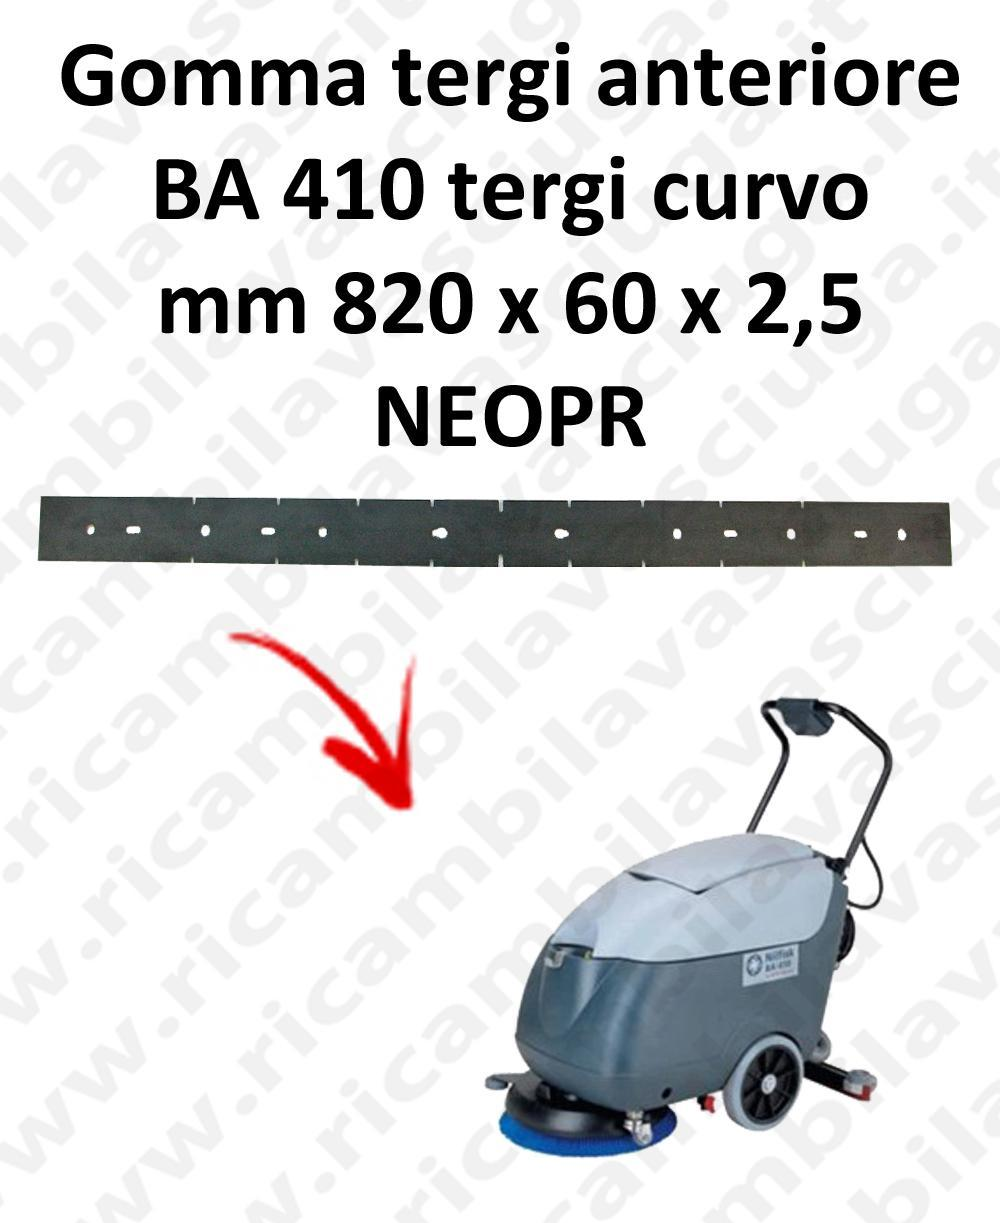 BA 410 Front Squeegee rubber for squeegee curved Nilfisk